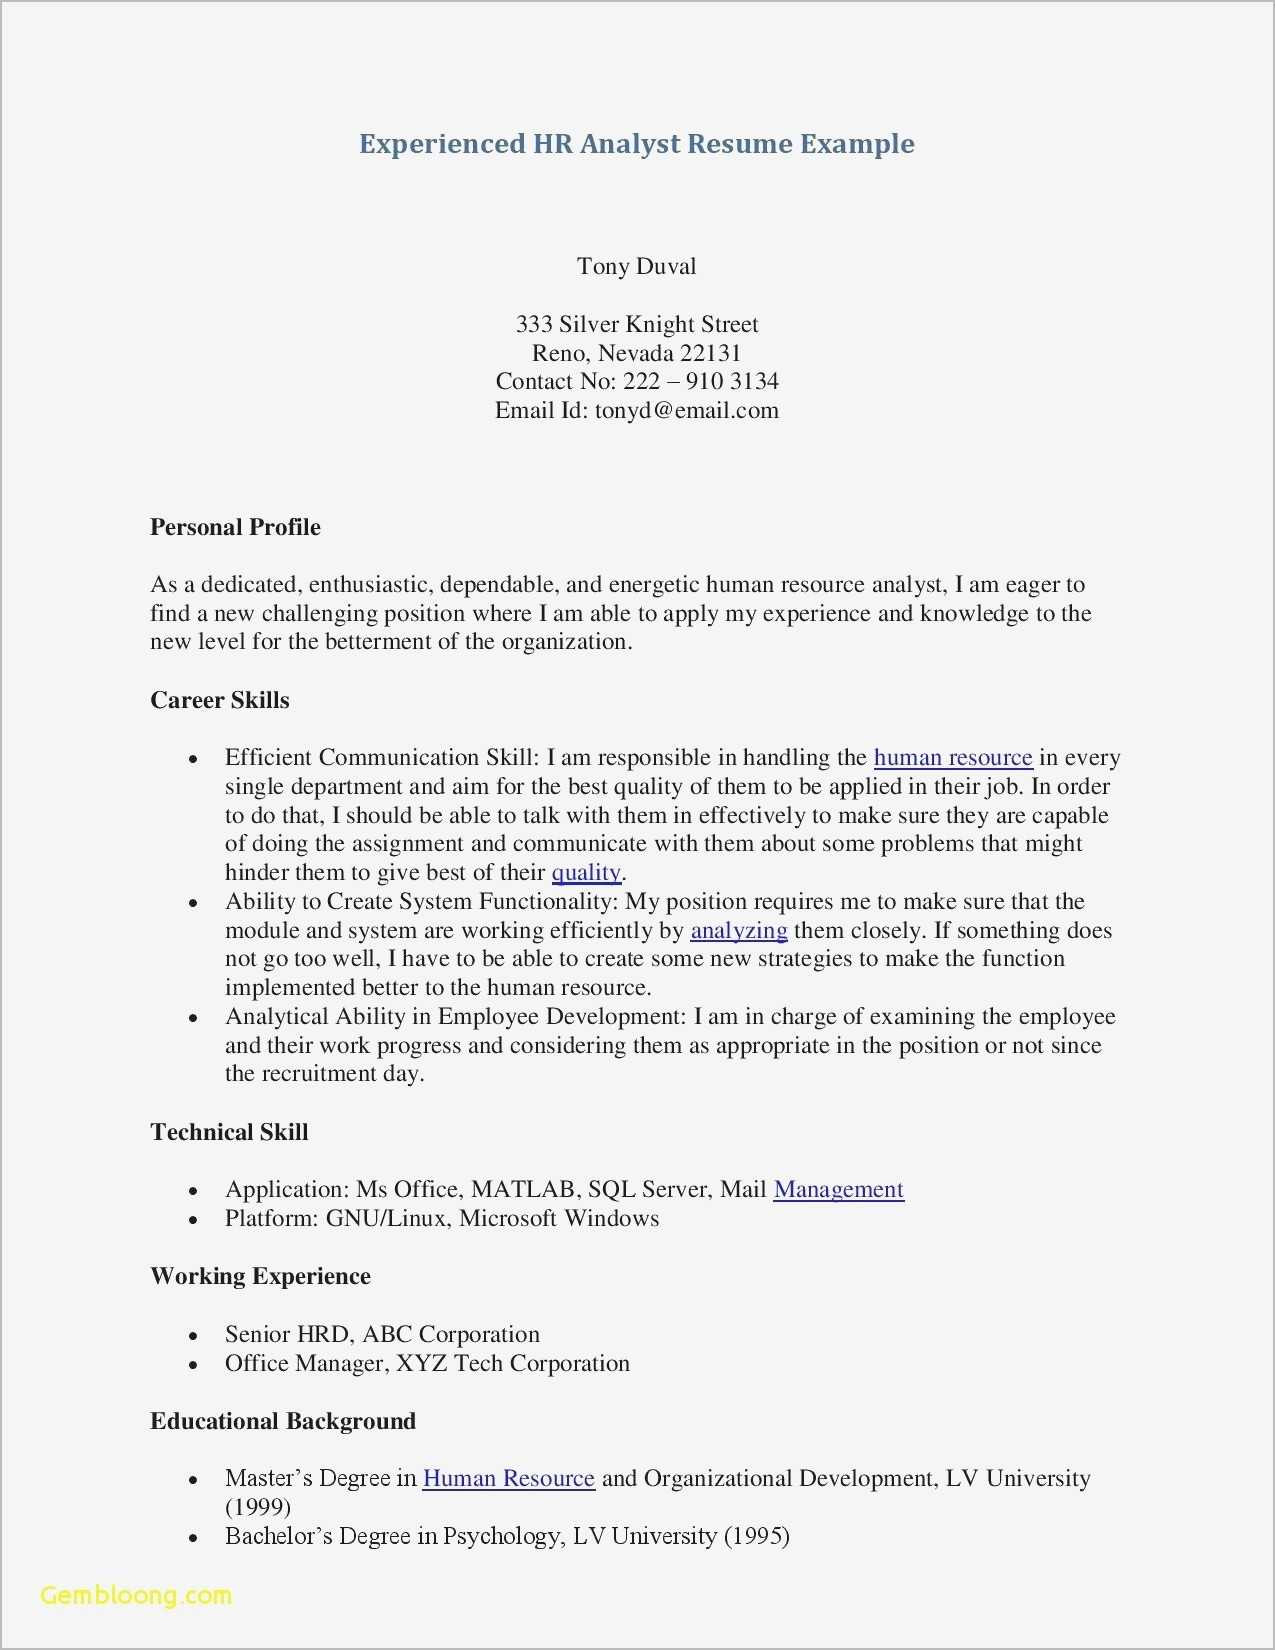 Sample Letter Of Recommendation Template Free - Free Cute Resume Templates Recent Awesome Free Professional Resume